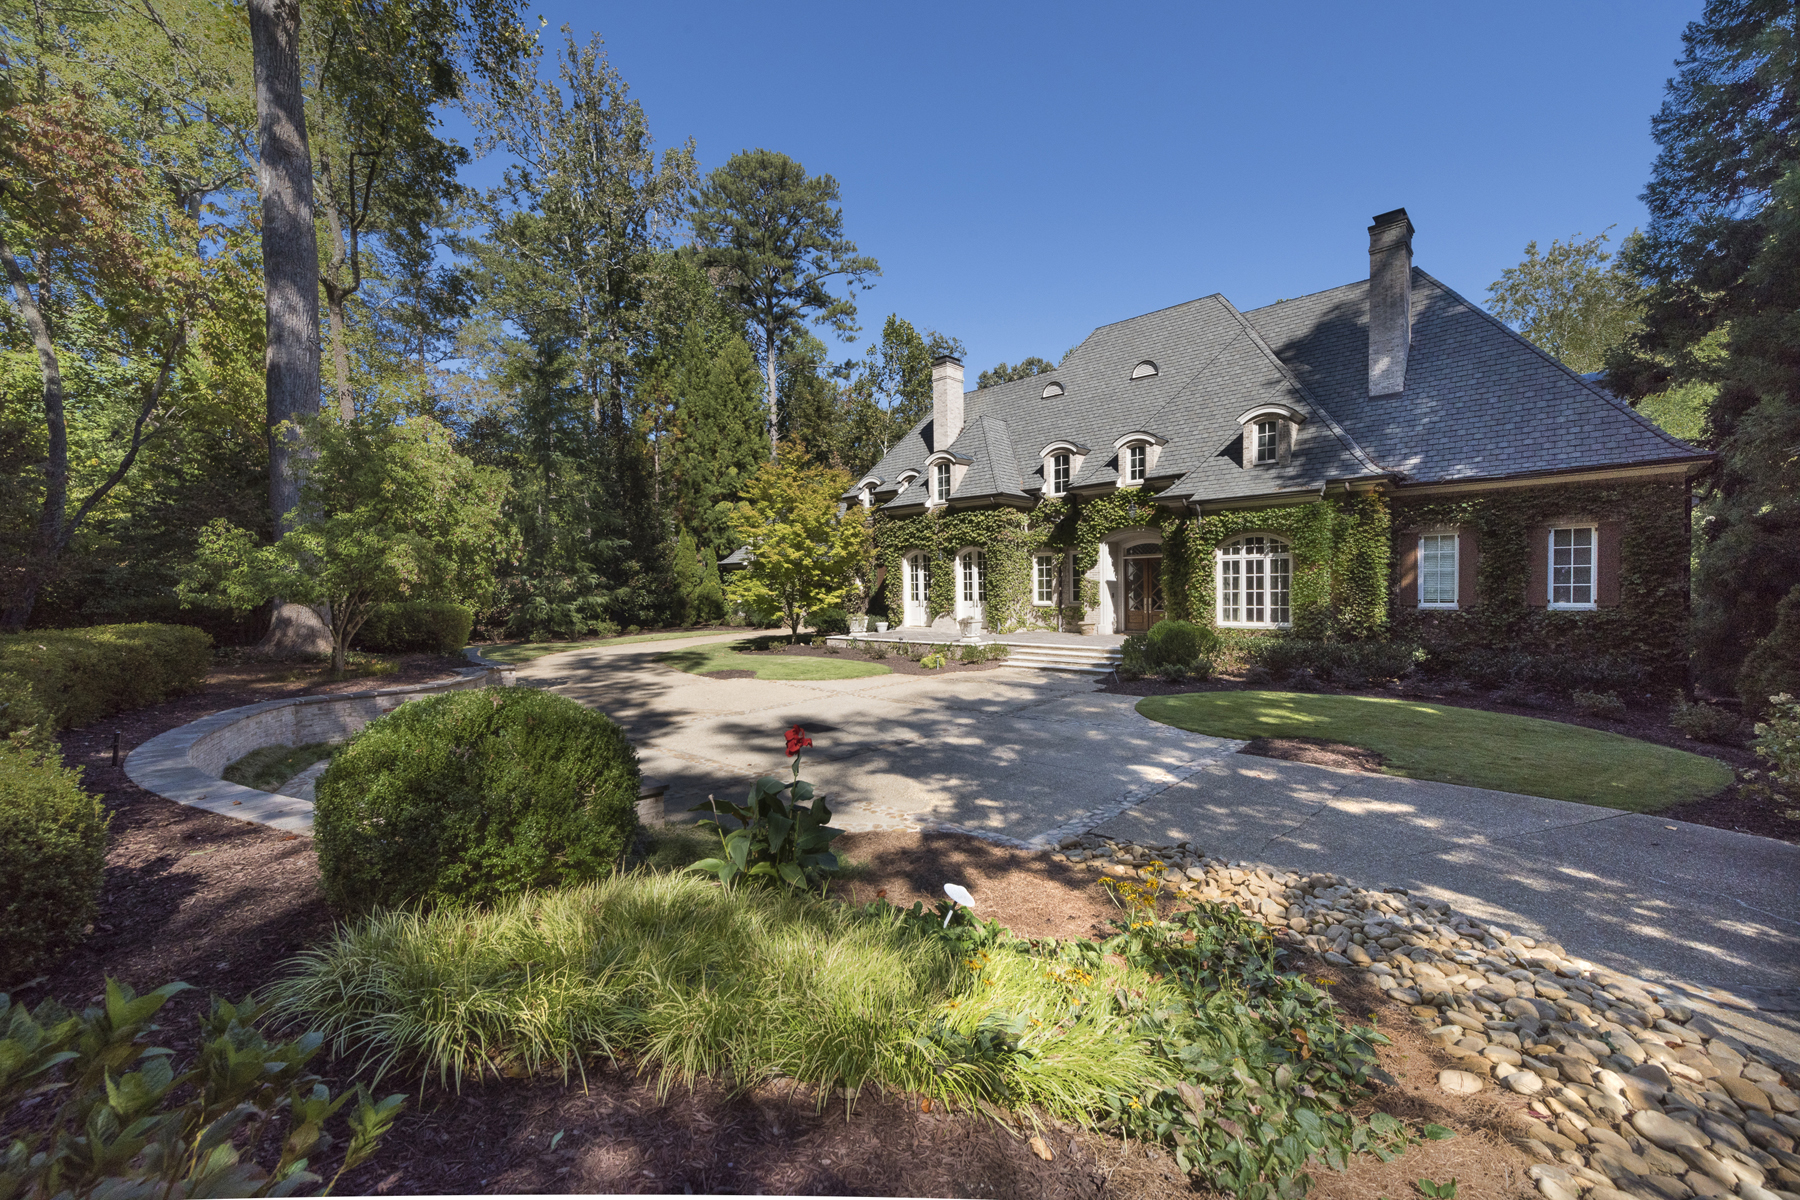 단독 가정 주택 용 매매 에 Gorgeous Gated Estate Property With Separate Large Guest House 714 W Conway Drive NW Buckhead, Atlanta, 조지아, 30327 미국